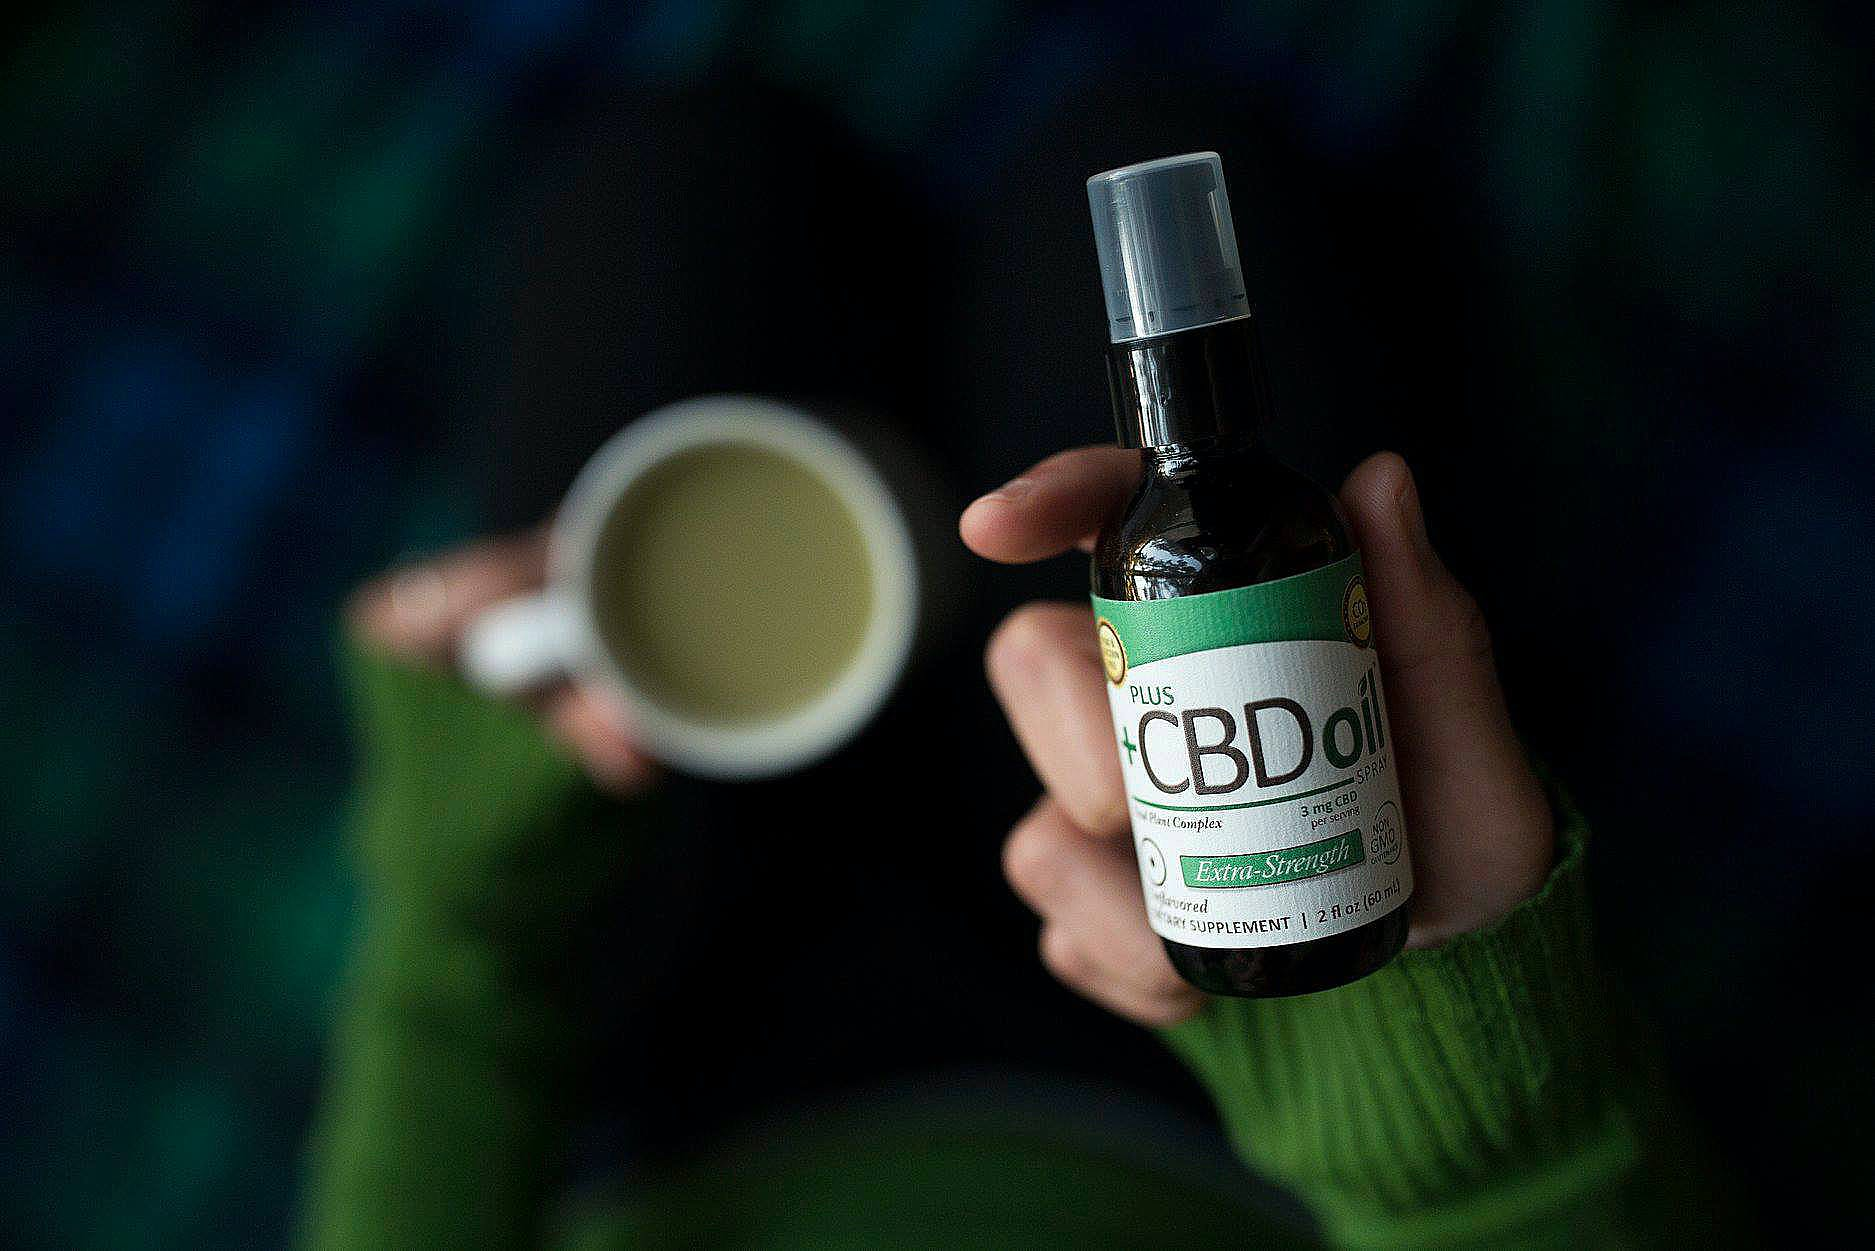 CBDoil Medical marijuana patients are getting evicted in legal states